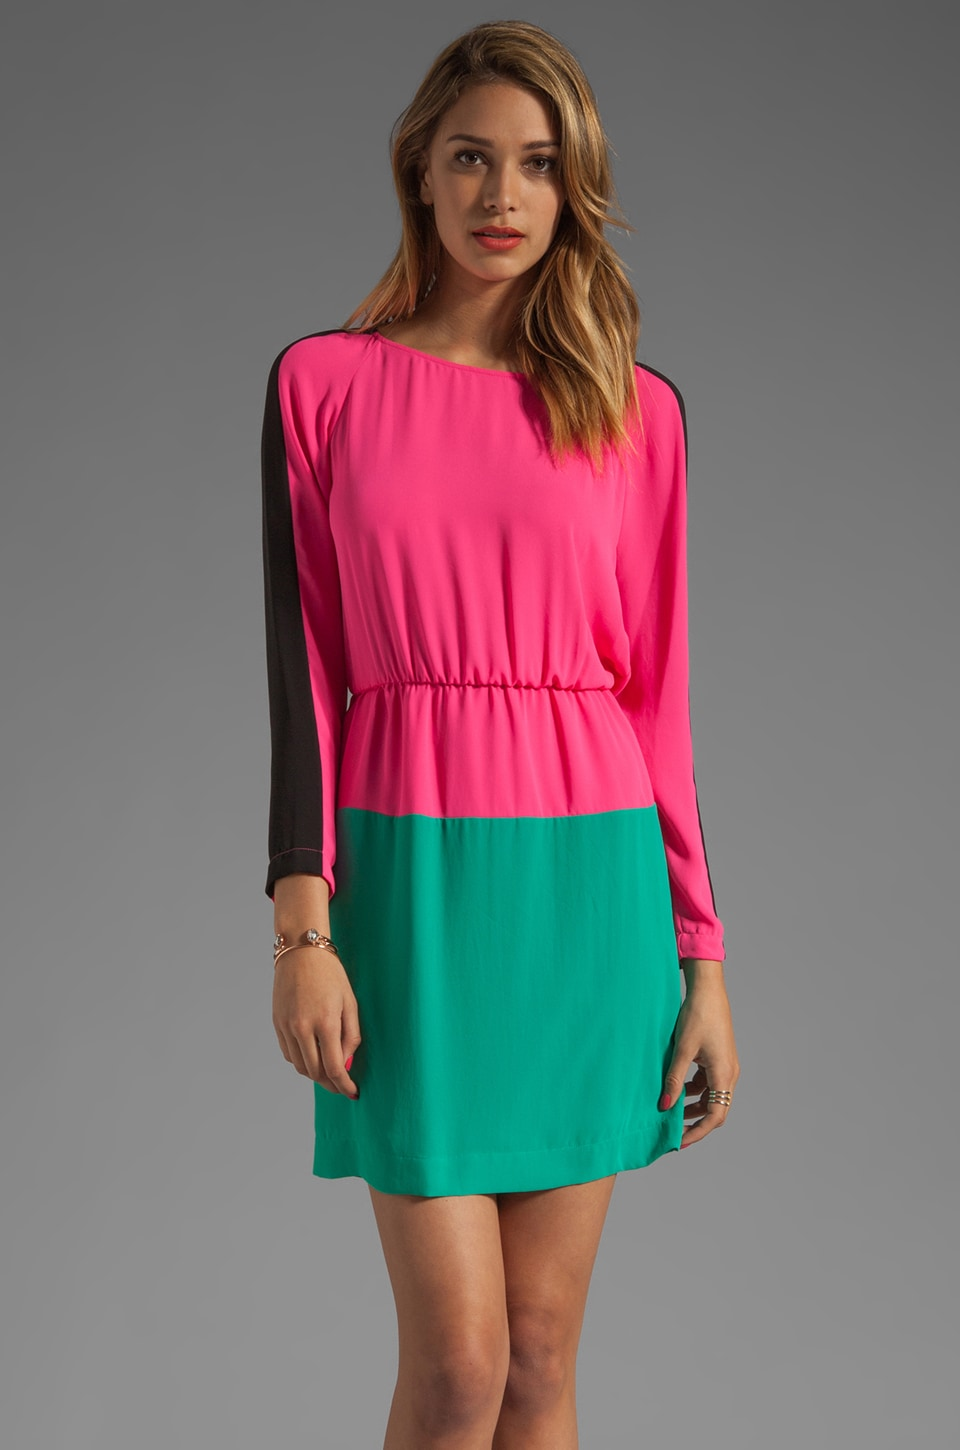 BCBGMAXAZRIA Long Sleeve Colorblocked Dress in Neon Pink Combo